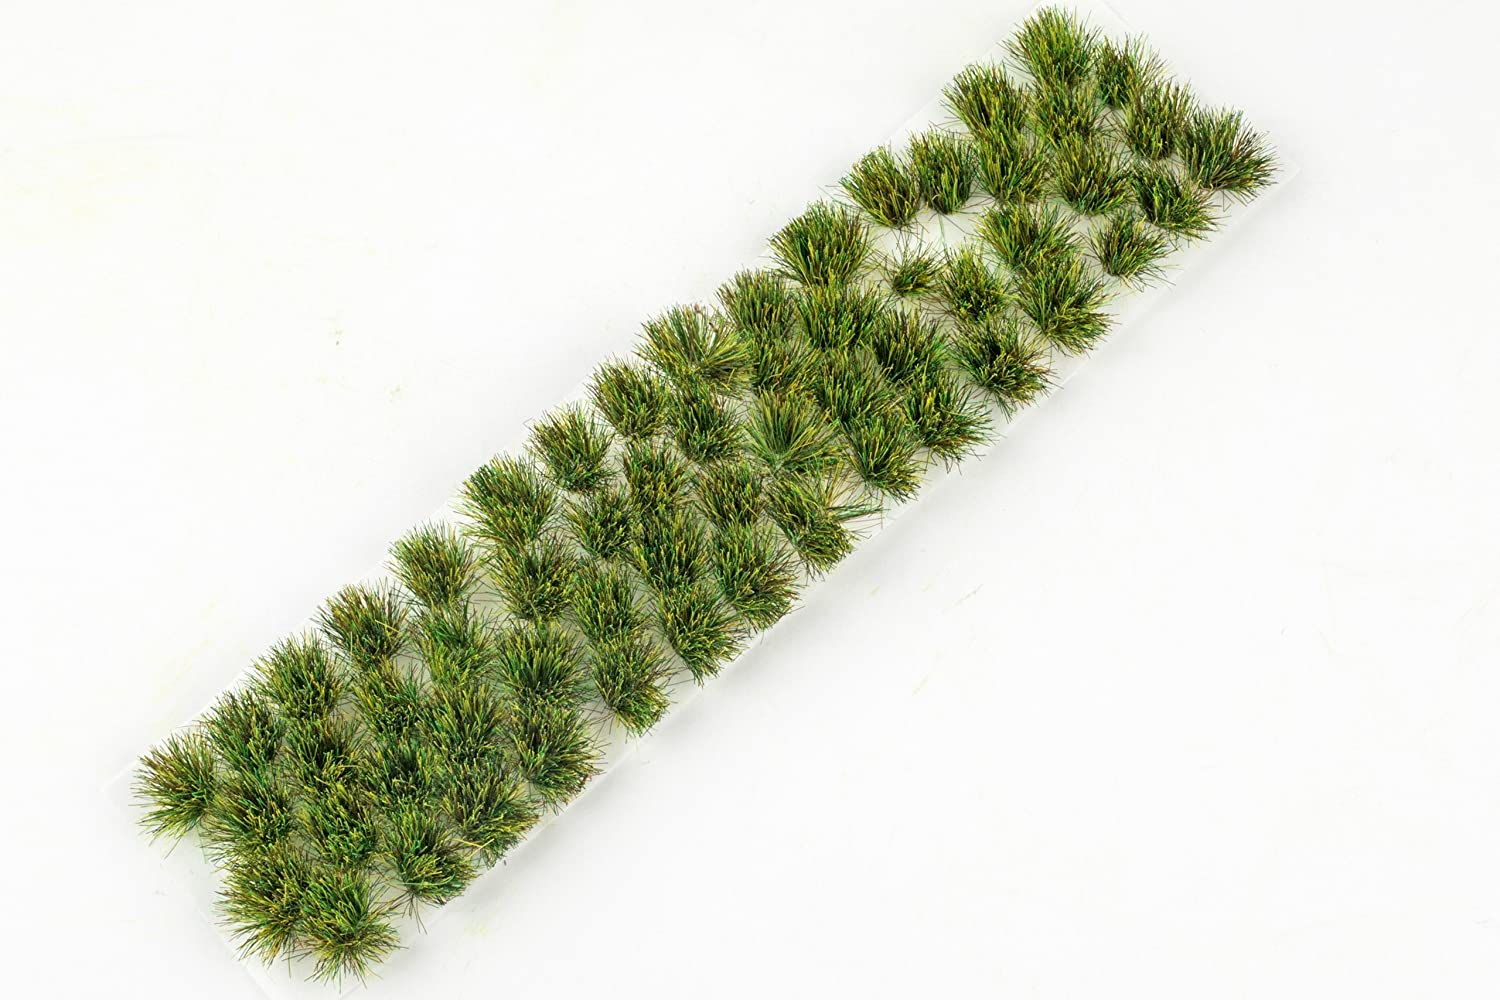 War World Gaming Summer 6mm Self Adhesive Grass Tufts x 68 – Wargaming Terrain Model Diorama Miniatures WWS Scenery Manufacturer spr0046t